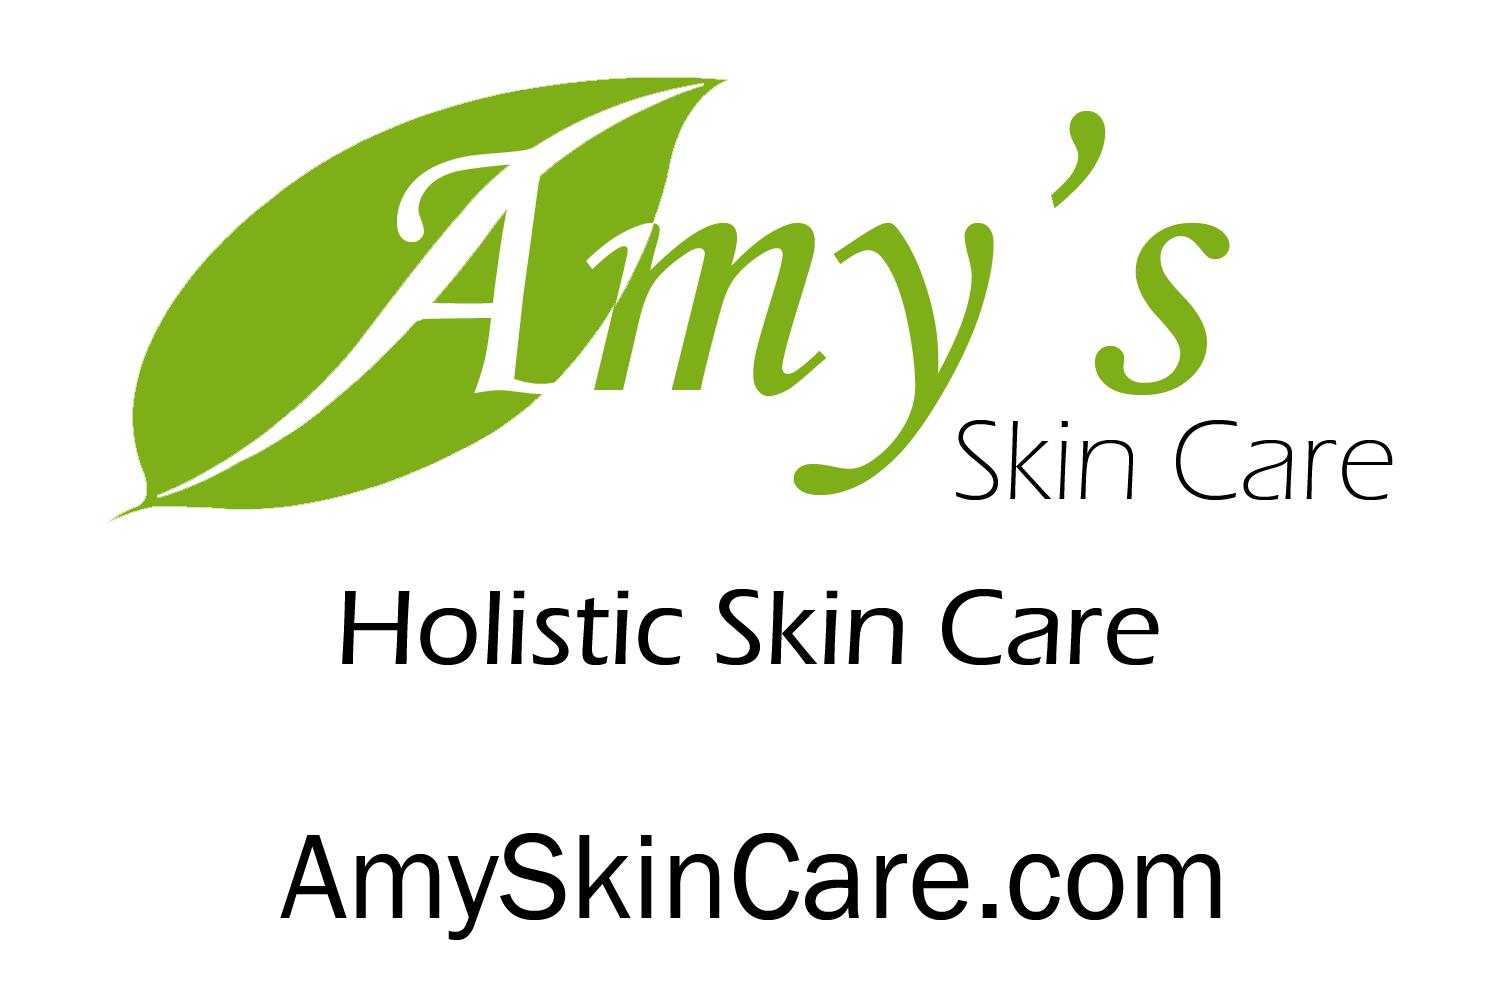 Amy' Skin Care - As the sole proprietor of Amy's Skin Care, Amy Lamb has practiced a holistic approach to natural skin care since 2005 with rave reviews.Whether its a relaxing service or a free product consultation, that brings you to Amy's private spa in Kirkland, it always begins with an expert analysis of your skin needs and recommendations to achieve beauty and balance.Amy is an authorized distributor and an expert in Eminence Organic Skin Care products. She is Washington State licensed Master Esthetician, NCEA Certified and a member of the Association of Skin Care Professionals with certifications in European Skin Care, Manual Lymphatic Drainage and Deep Tissue and Lifting facial massage from the Euro Skin Institute, as well as a BFA from Ithaca College.